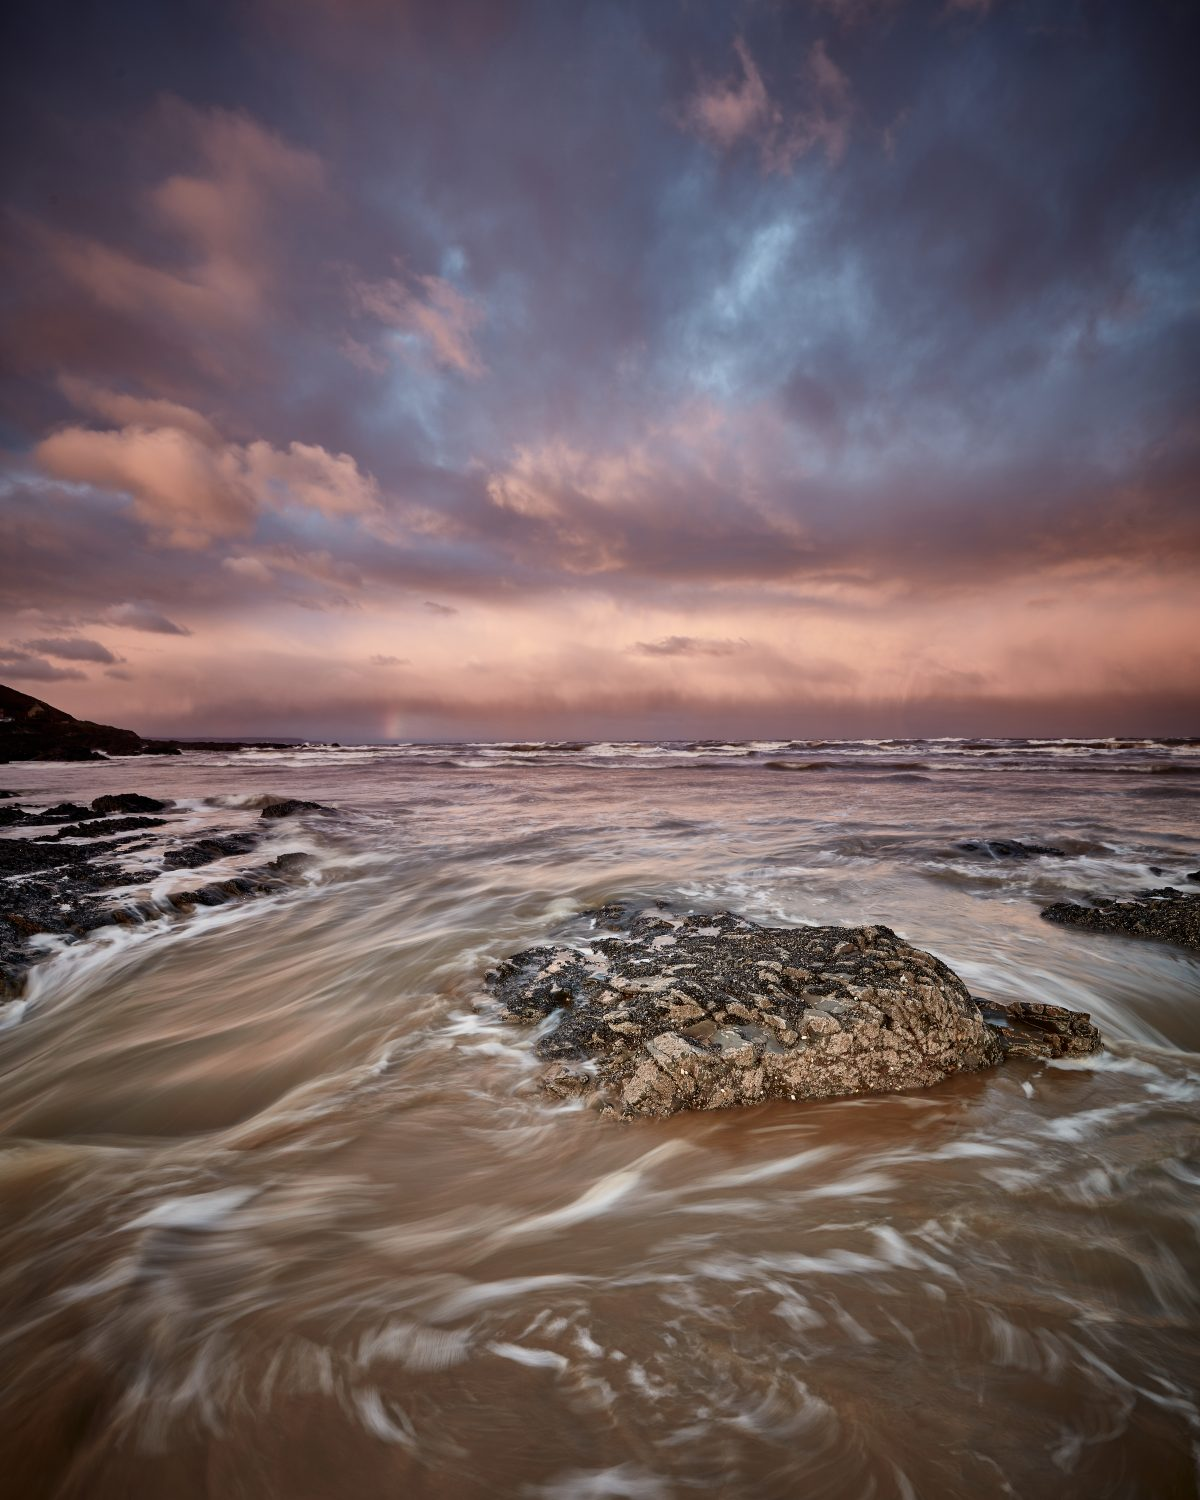 Water swirls over rocks on a beach under a stormy red sky